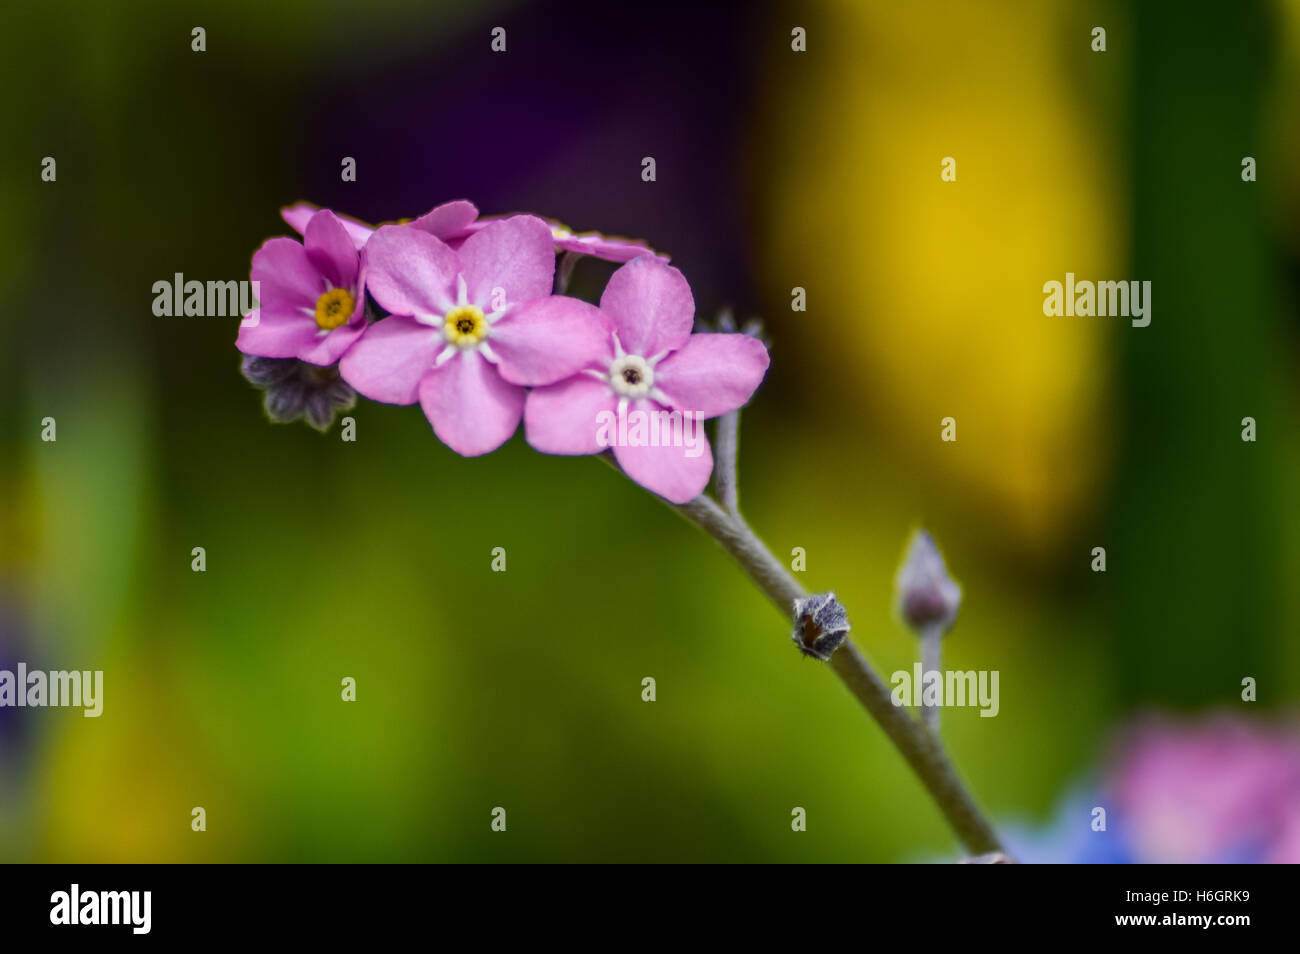 Pink forget me not flowers macro stock photo 124530317 alamy pink forget me not flowers macro mightylinksfo